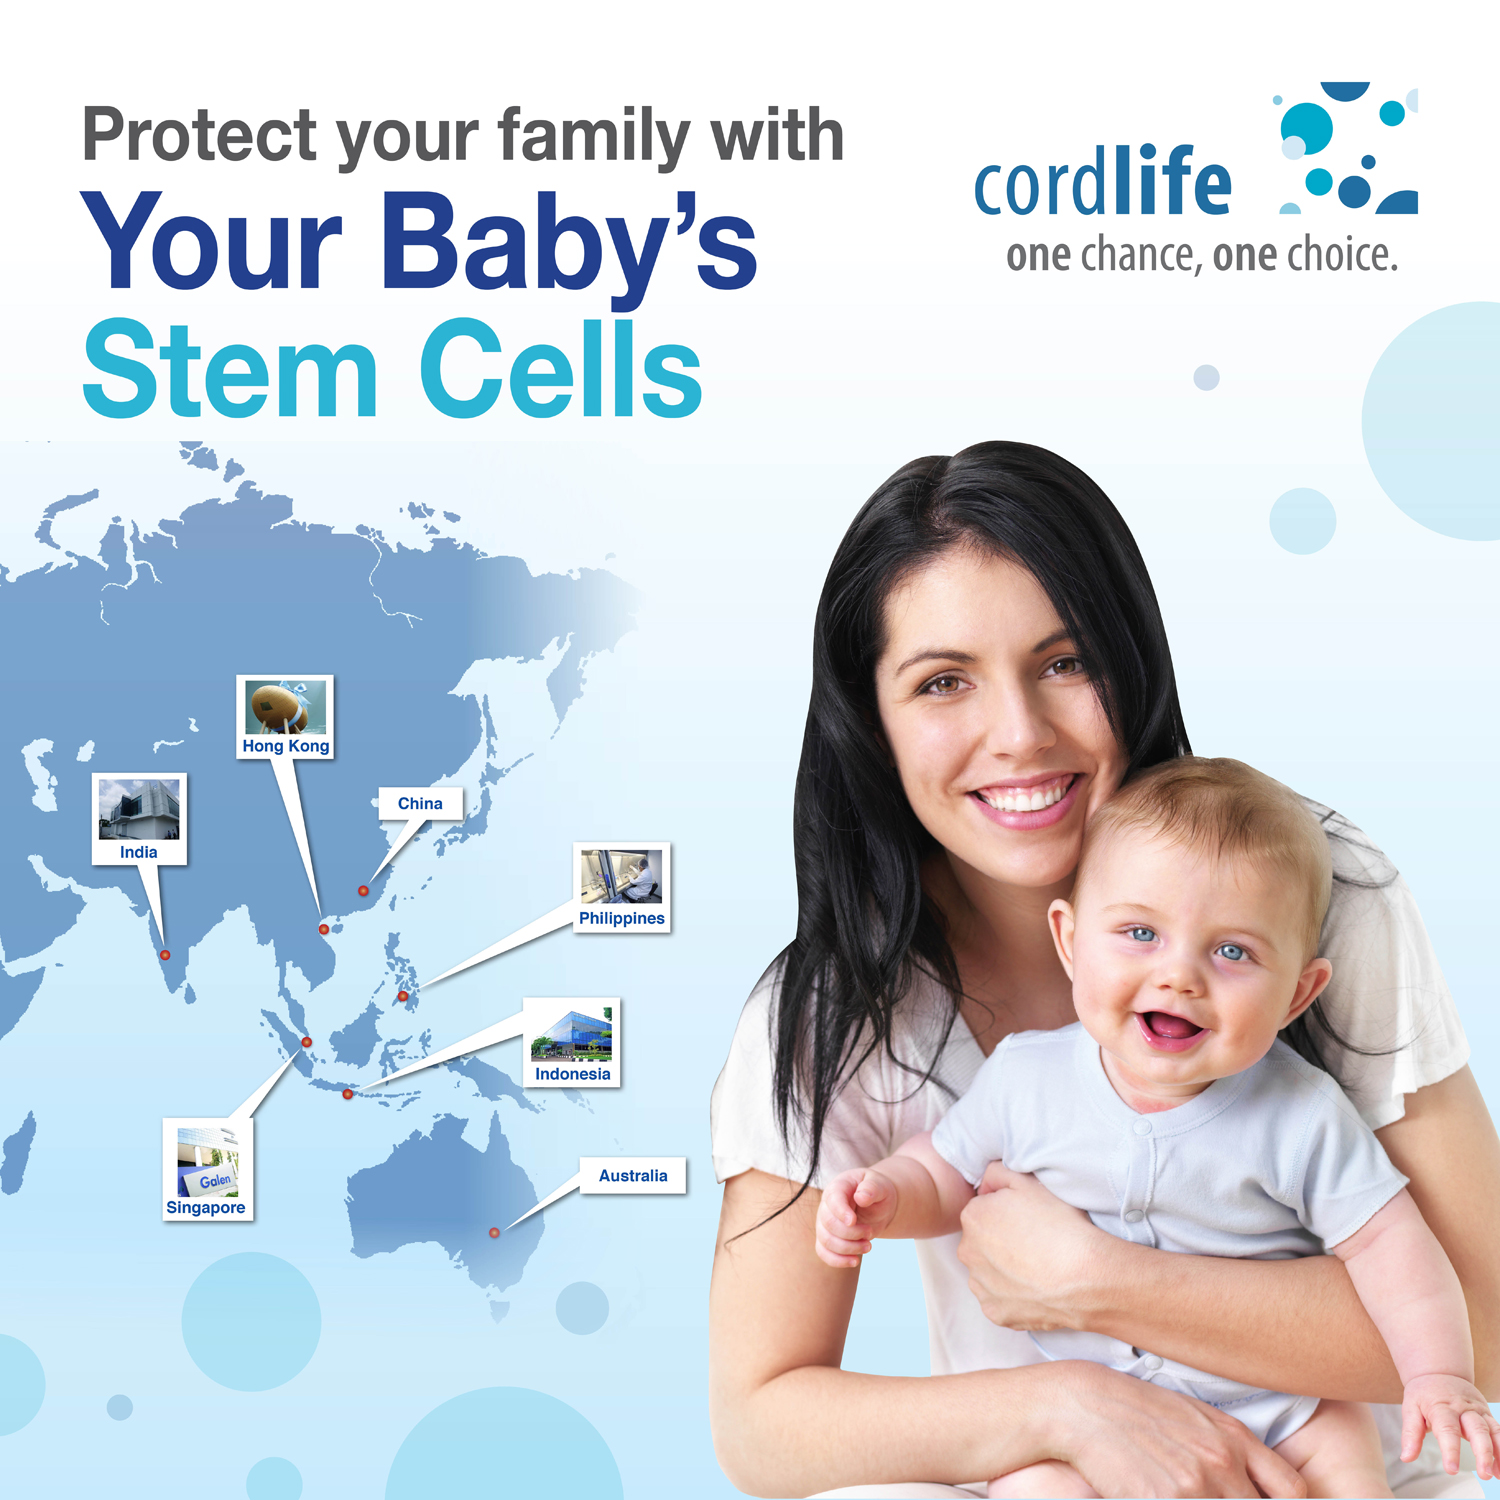 Cordlife Singapore